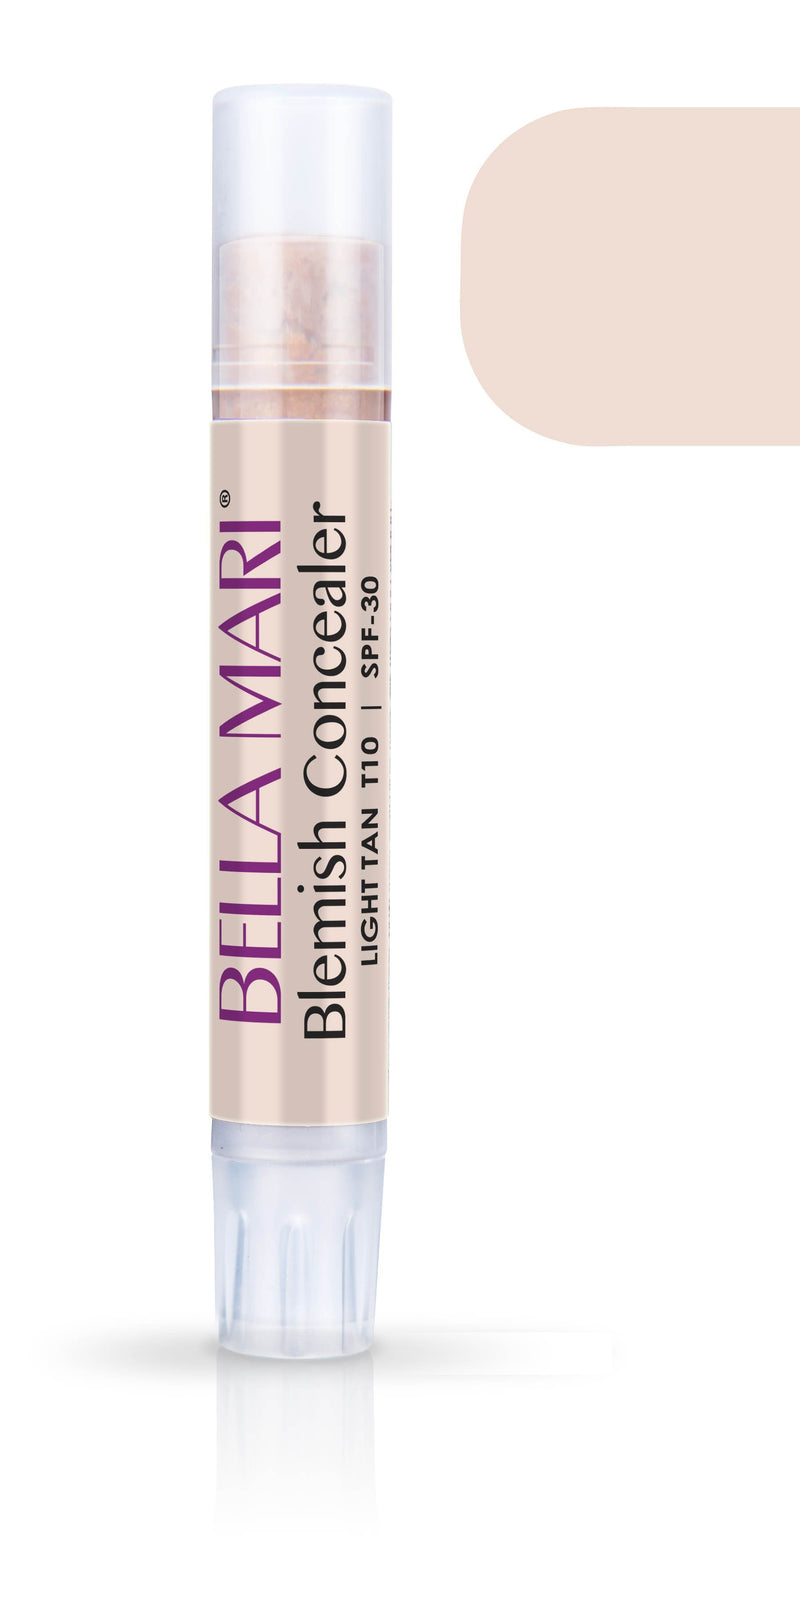 Bella Mari Natural Blemish Concealer Stick; 0.1floz - Bella Mari Natural Blemish Concealer Stick; 0.1floz - Light Tan